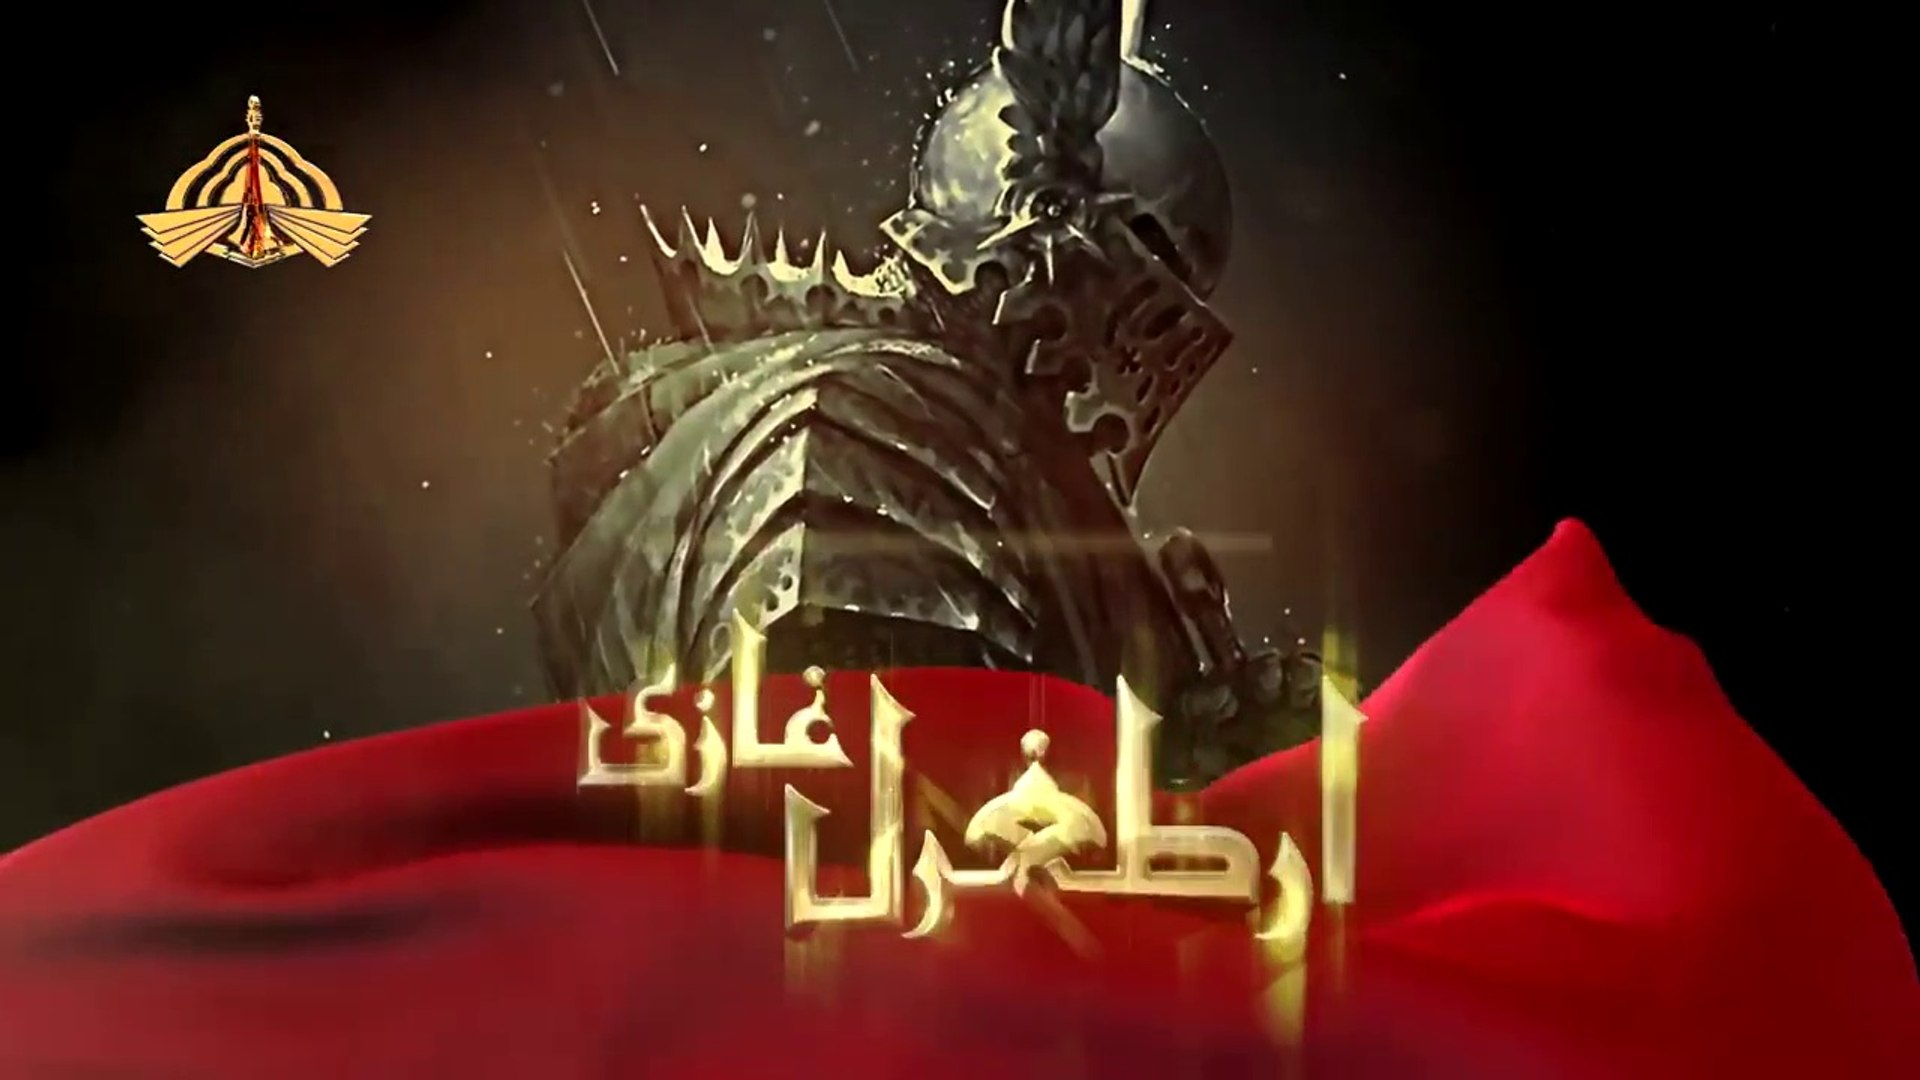 Dirilis Ertugrul Season 1 Episode 2 Urdu Dubbed Turkish TV Drama Watch Online